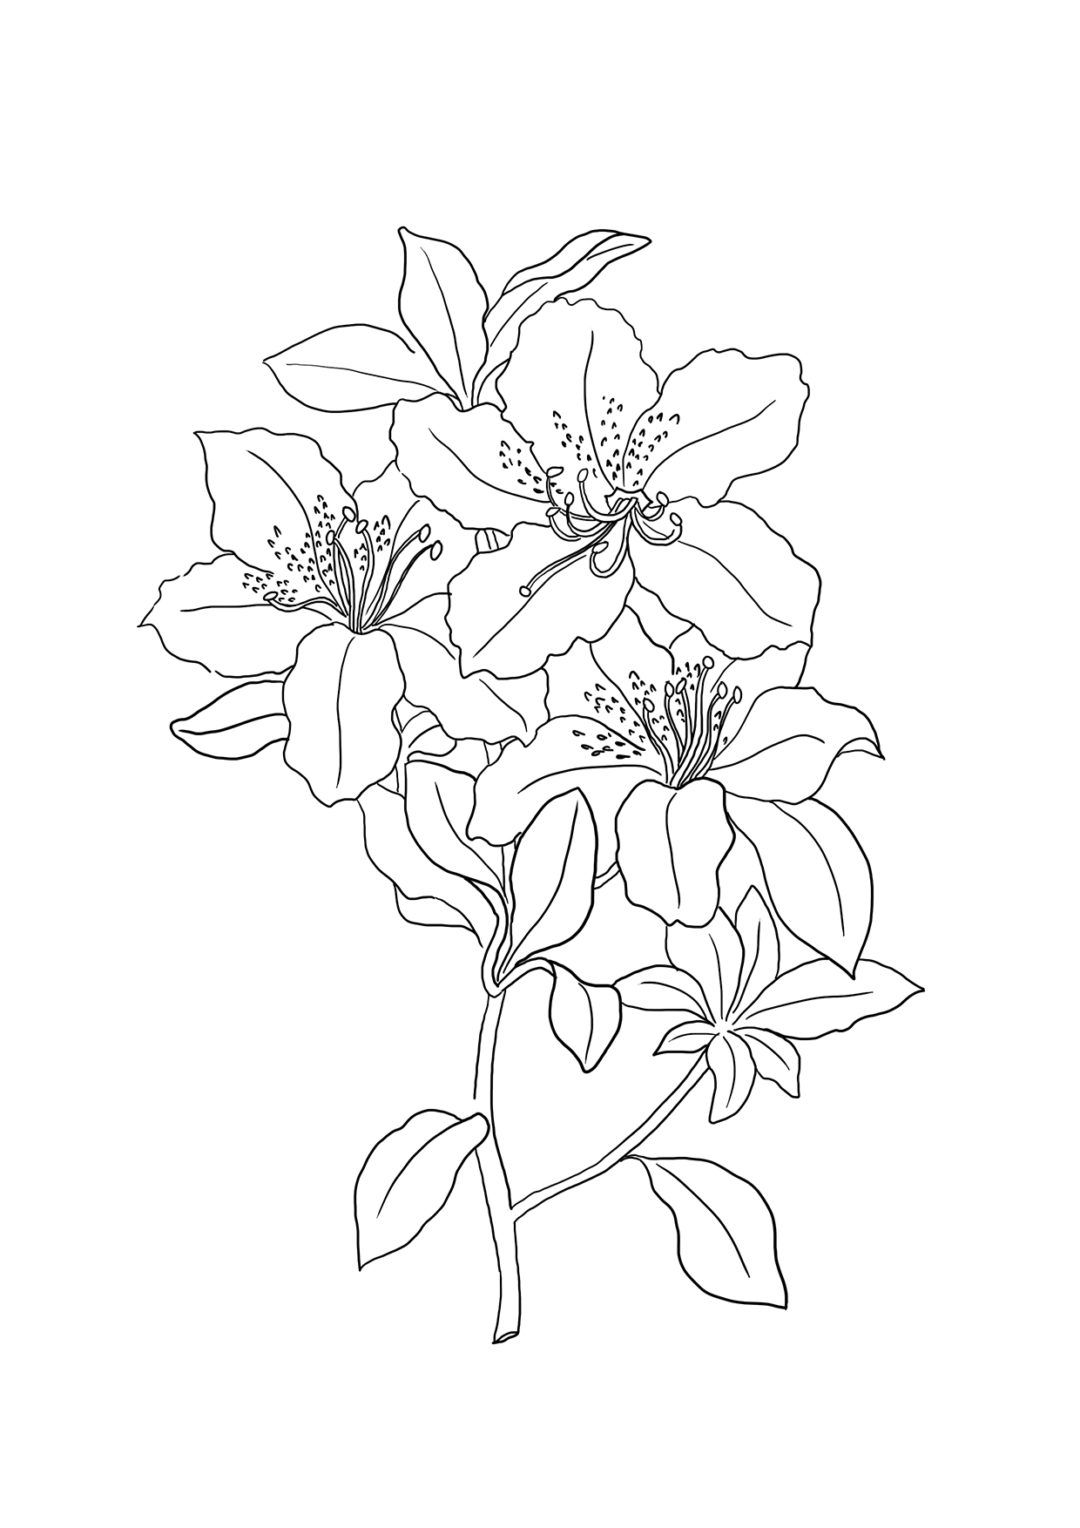 Flower Coloring Pages | Breakfast Party Declarations